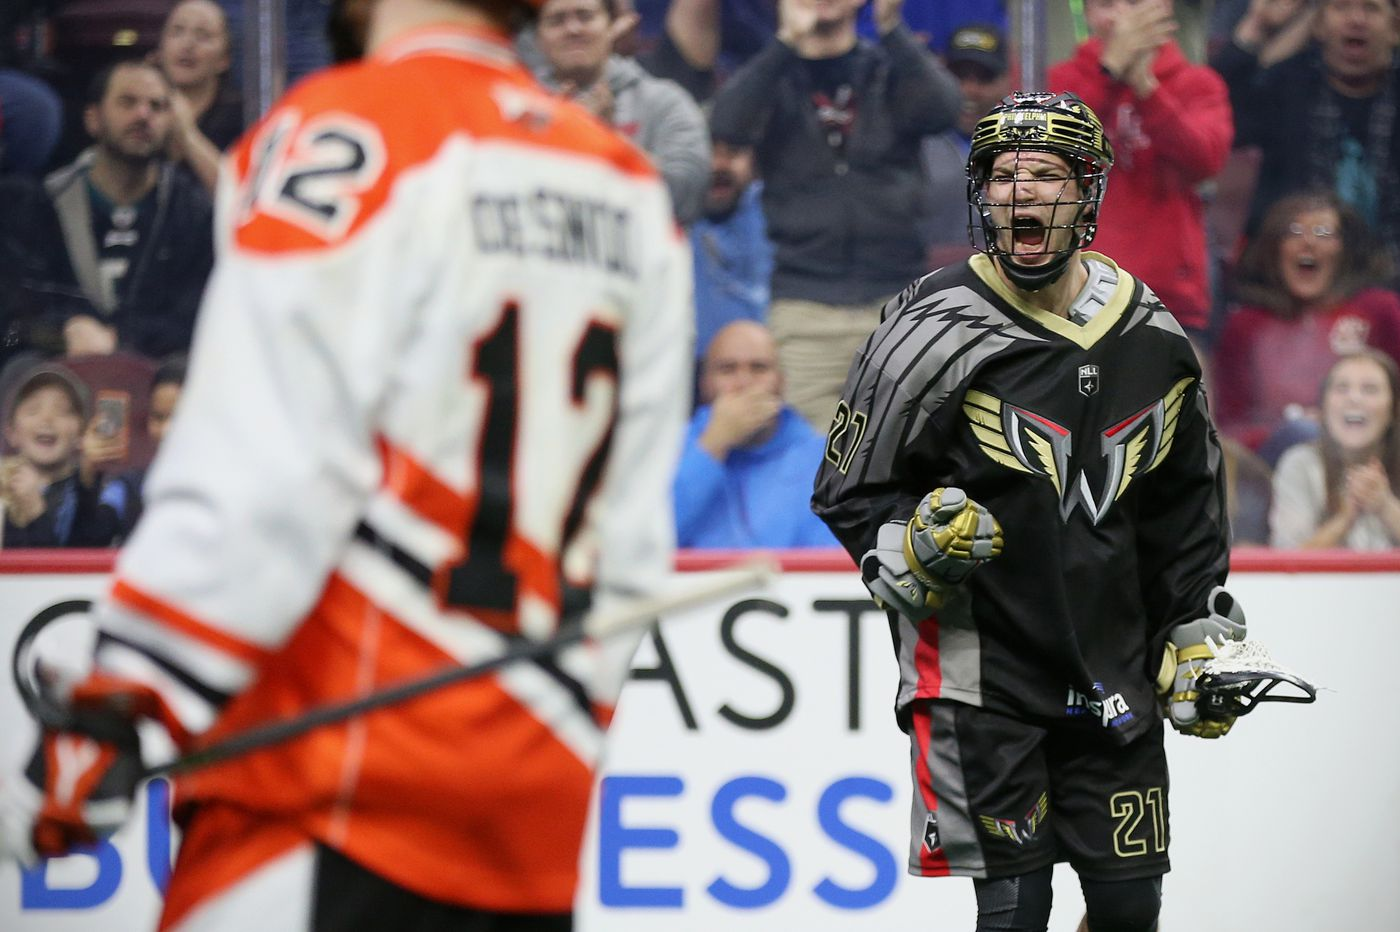 Wings hope Kevin Crowley gives them offensive boost as they host Georgia Swarm